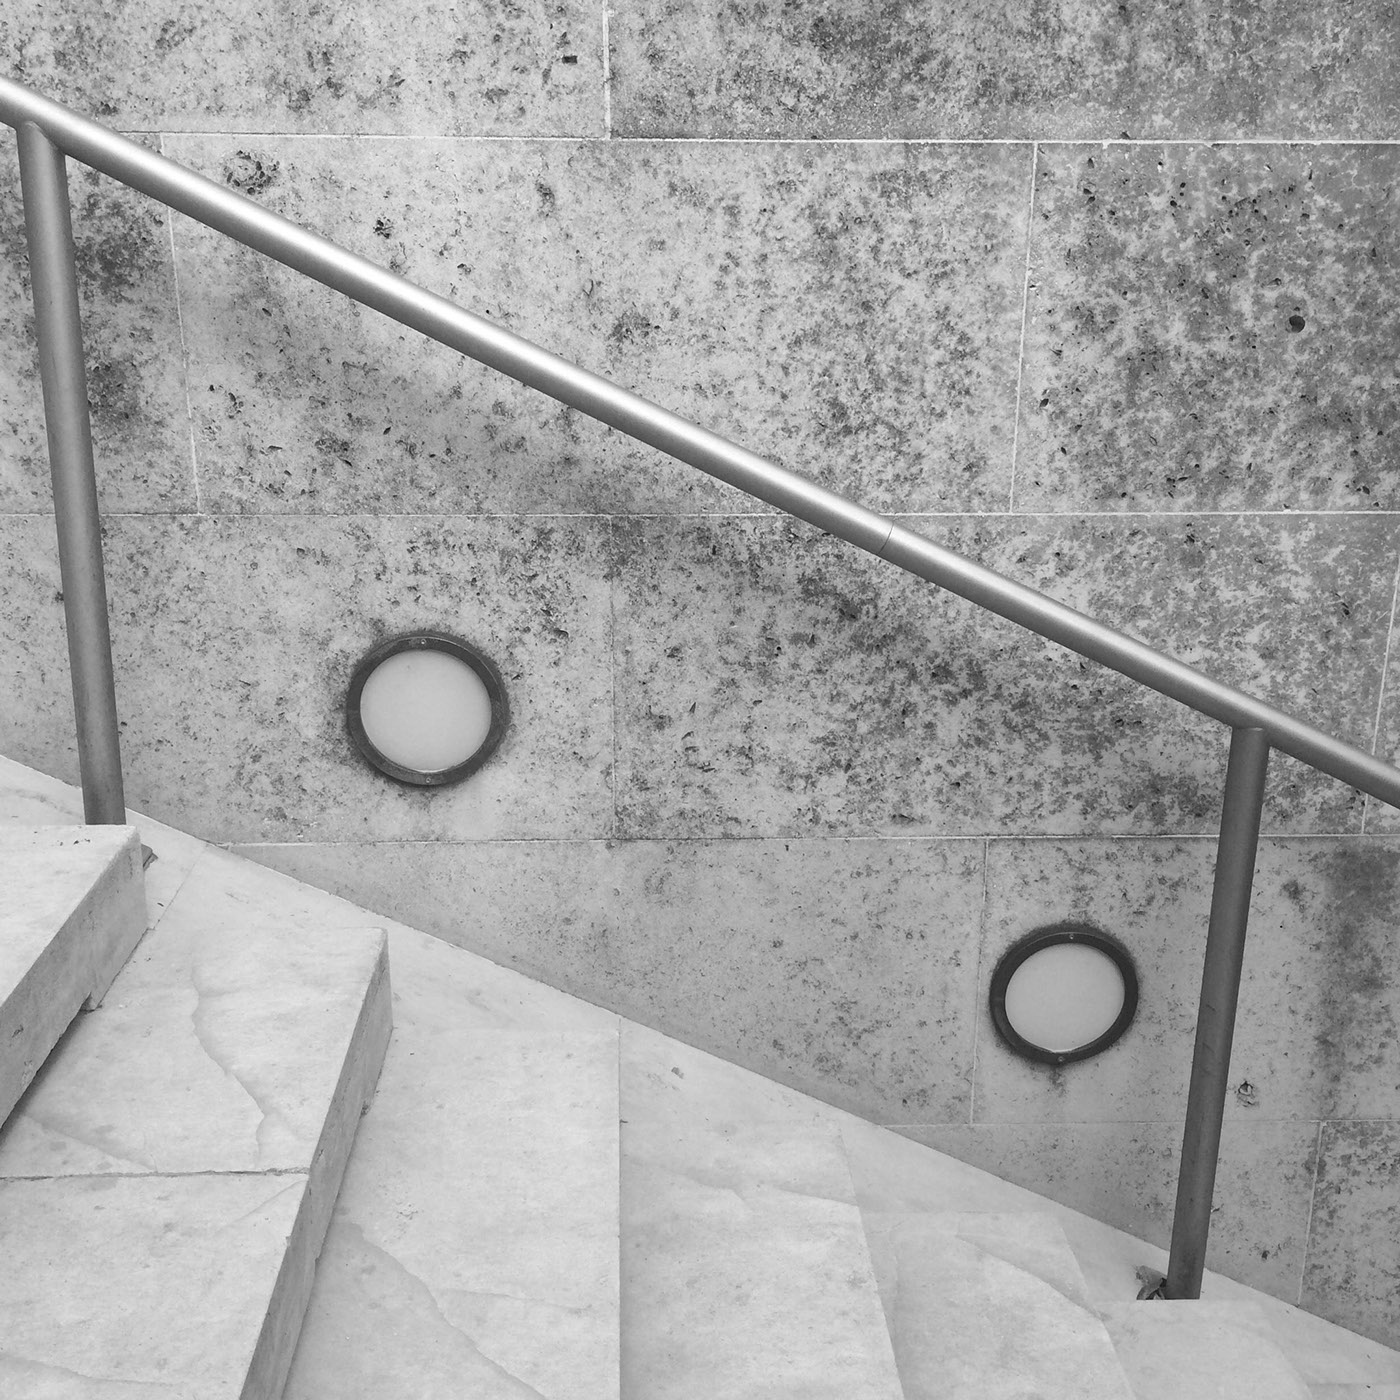 up architecture noir noir et blanc be black and white archi archidaily stairs bnw